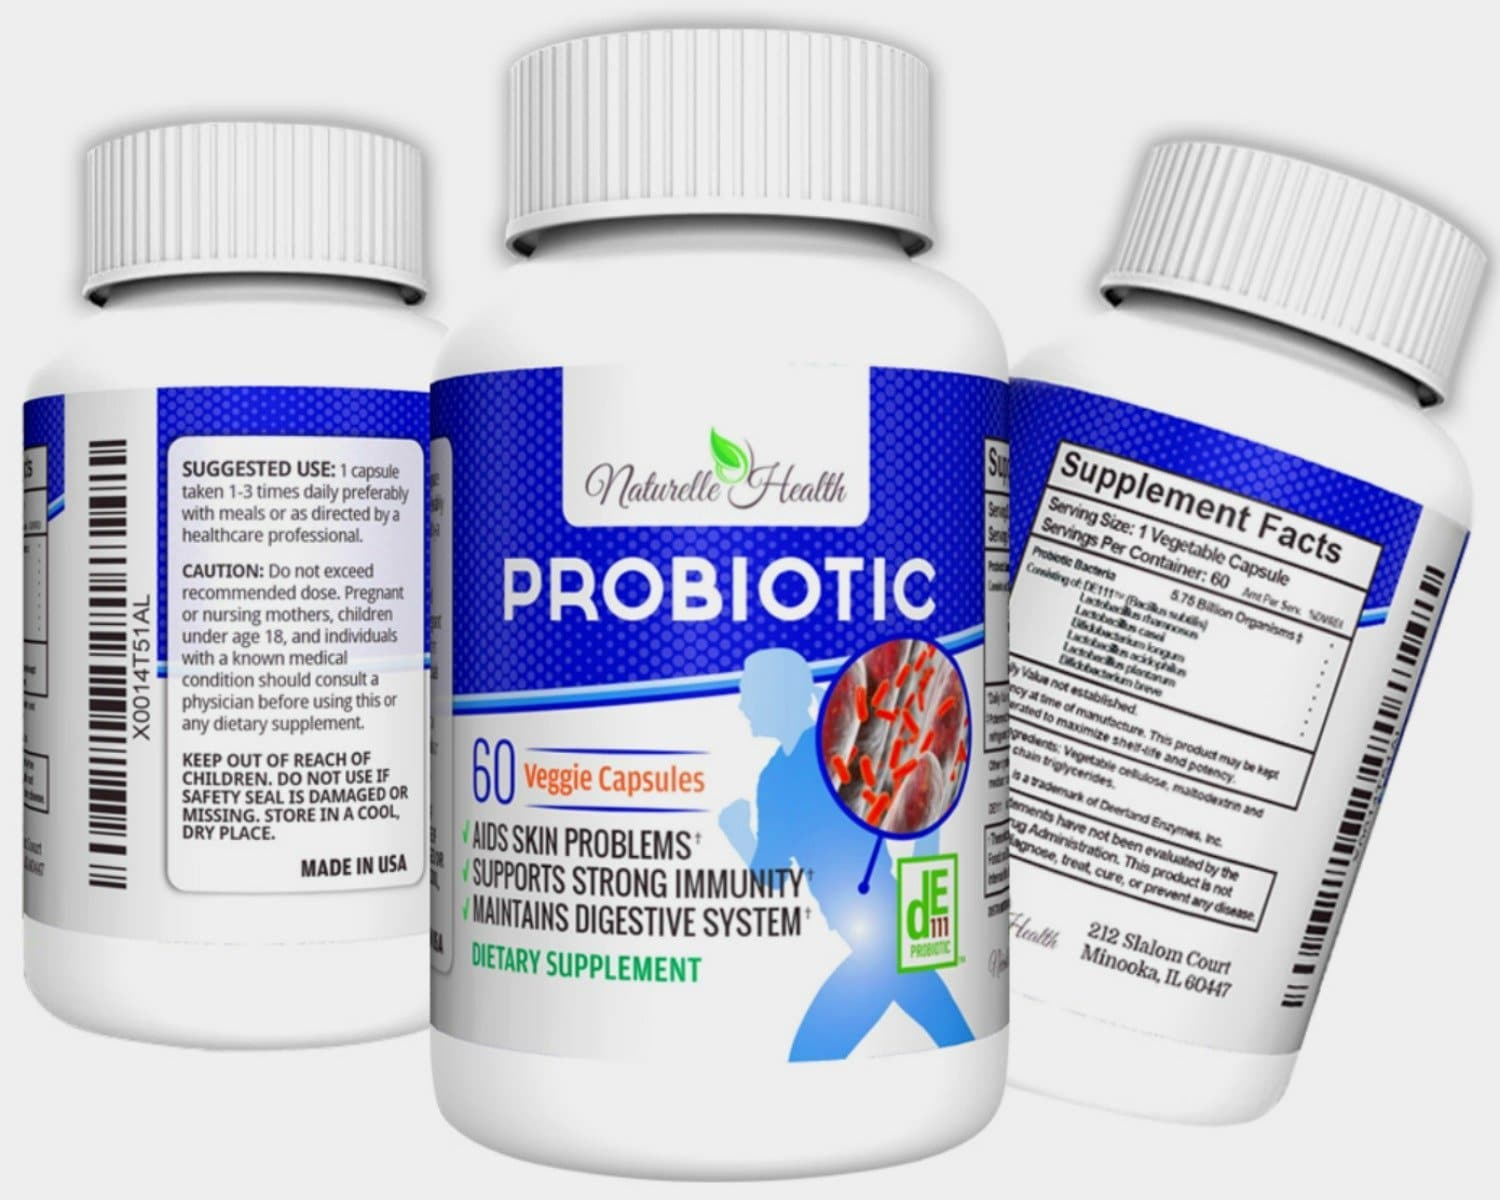 Bottles of Naturelle Health Probiotics Supplement